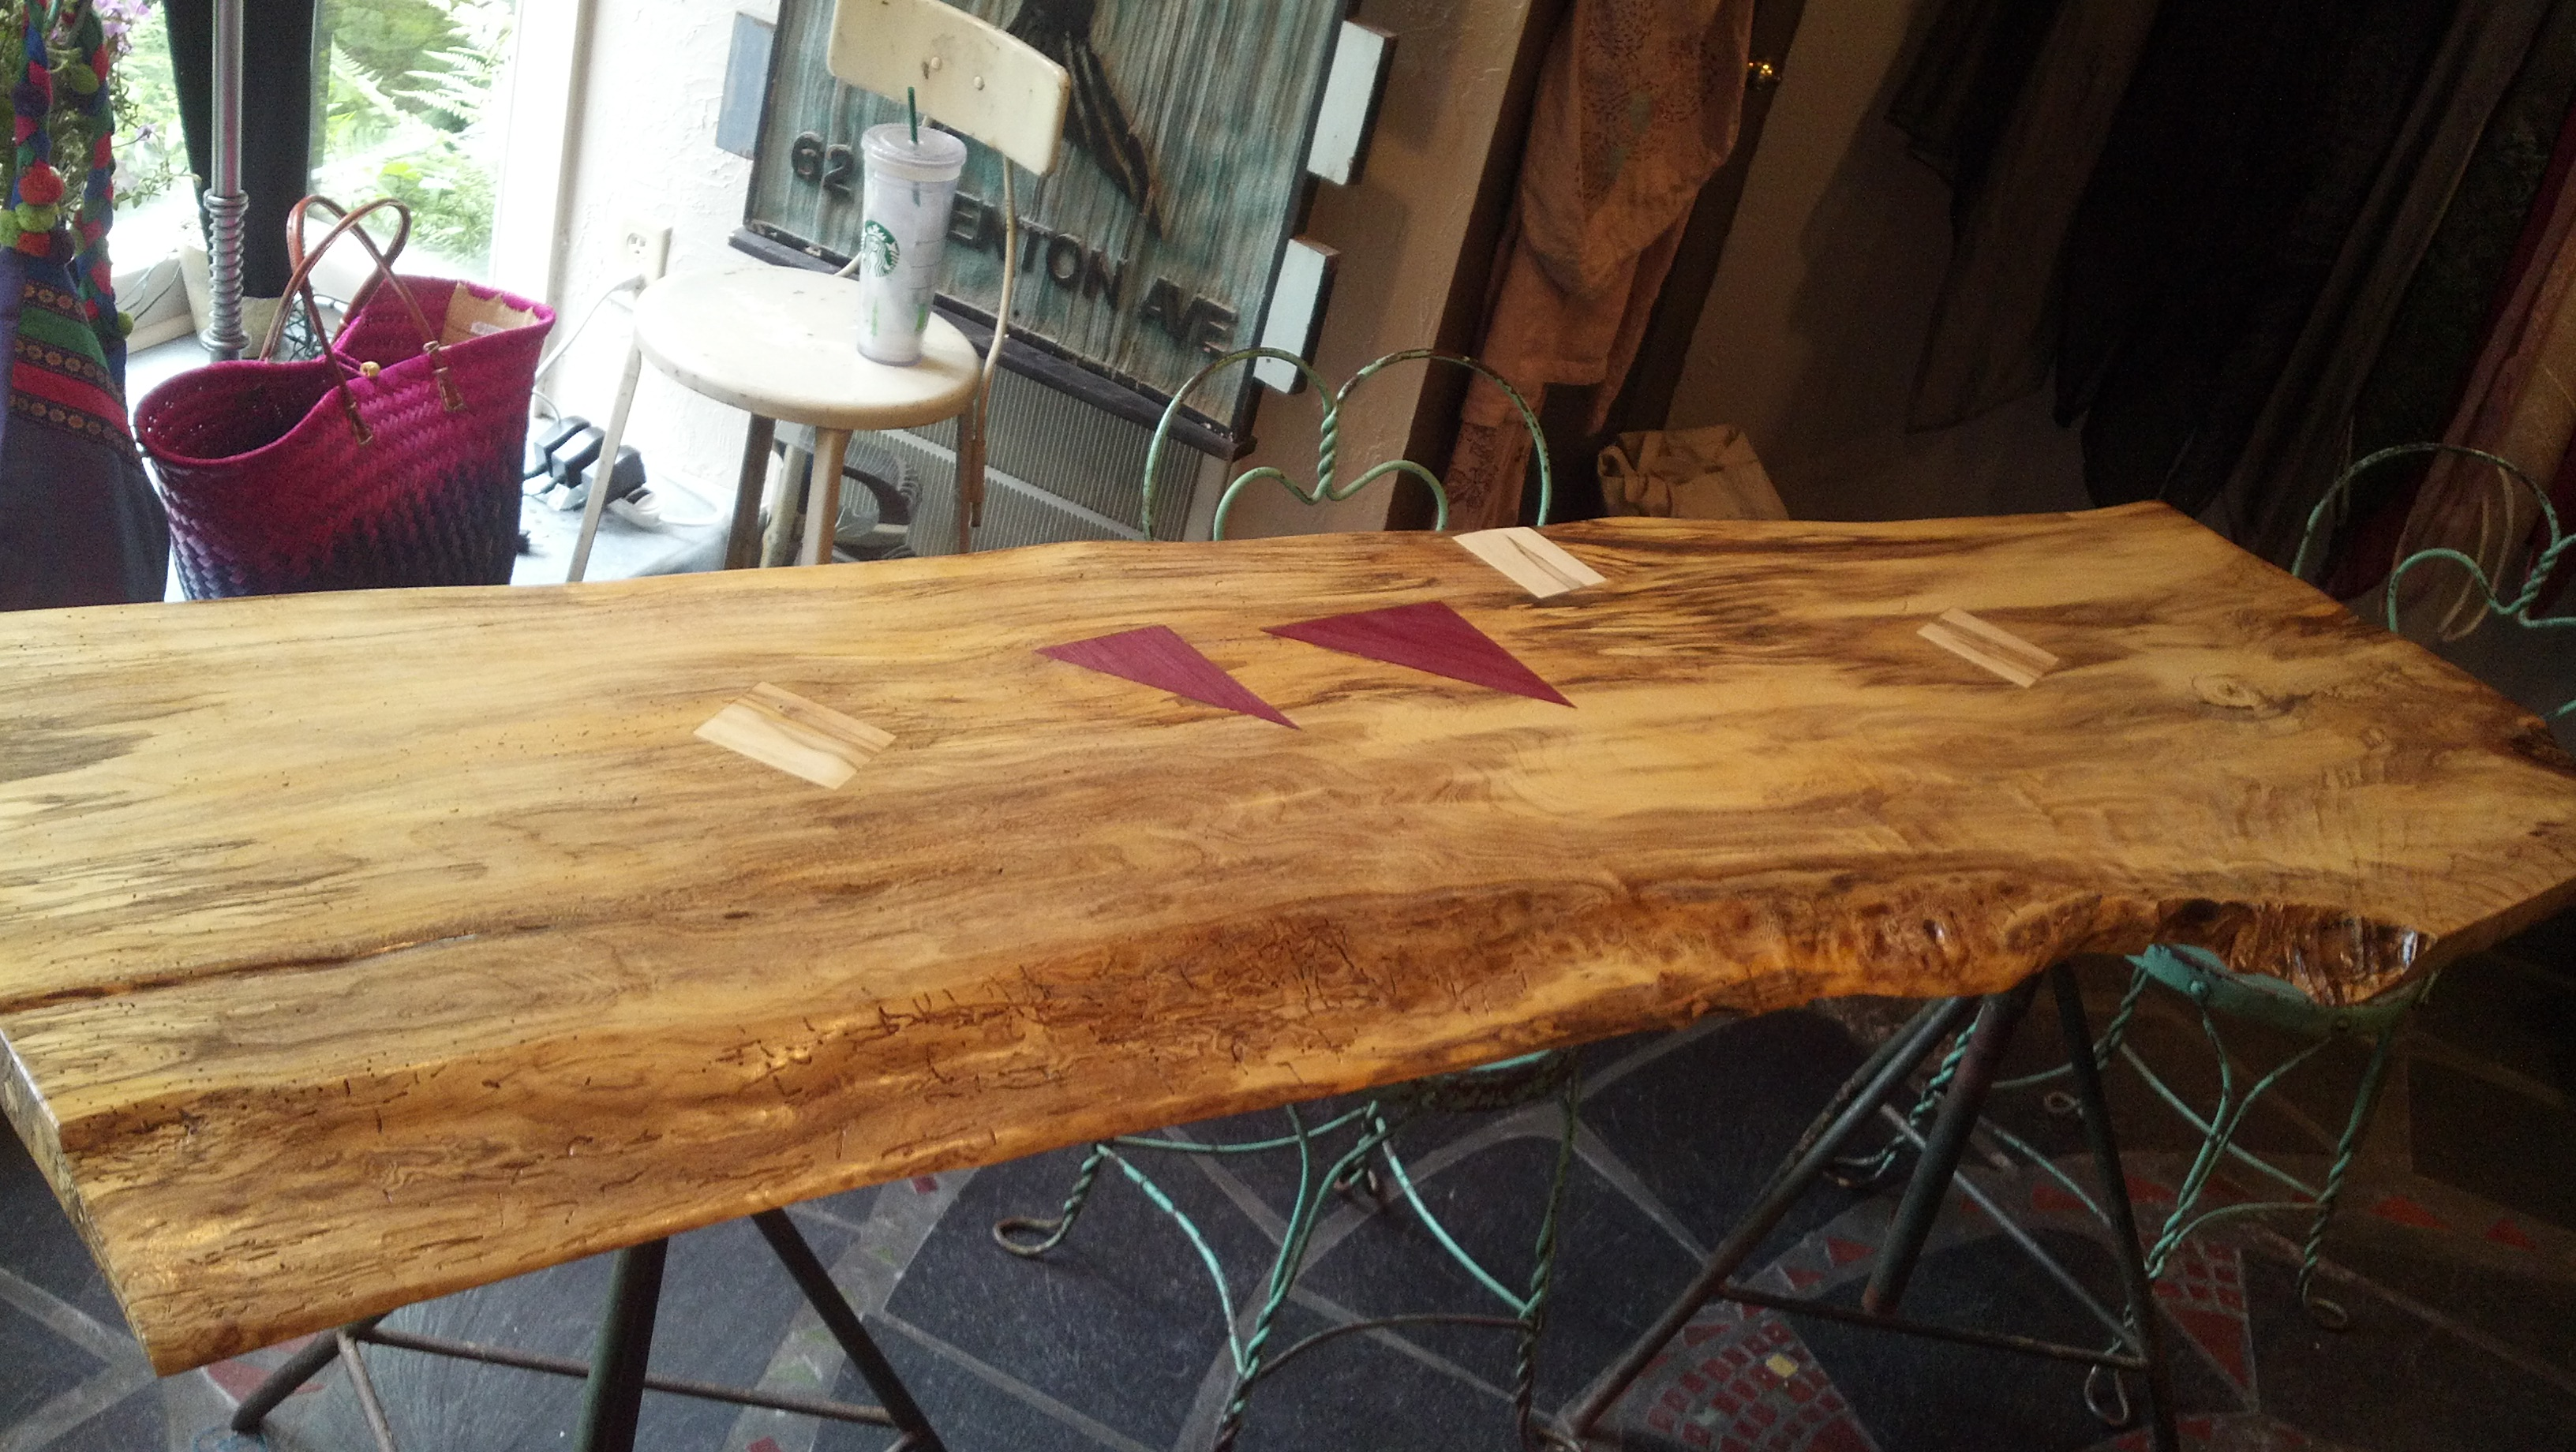 Maple Desk / Work Table with Purpleheart and Ambrosia Maple inserts by No Walls Studio